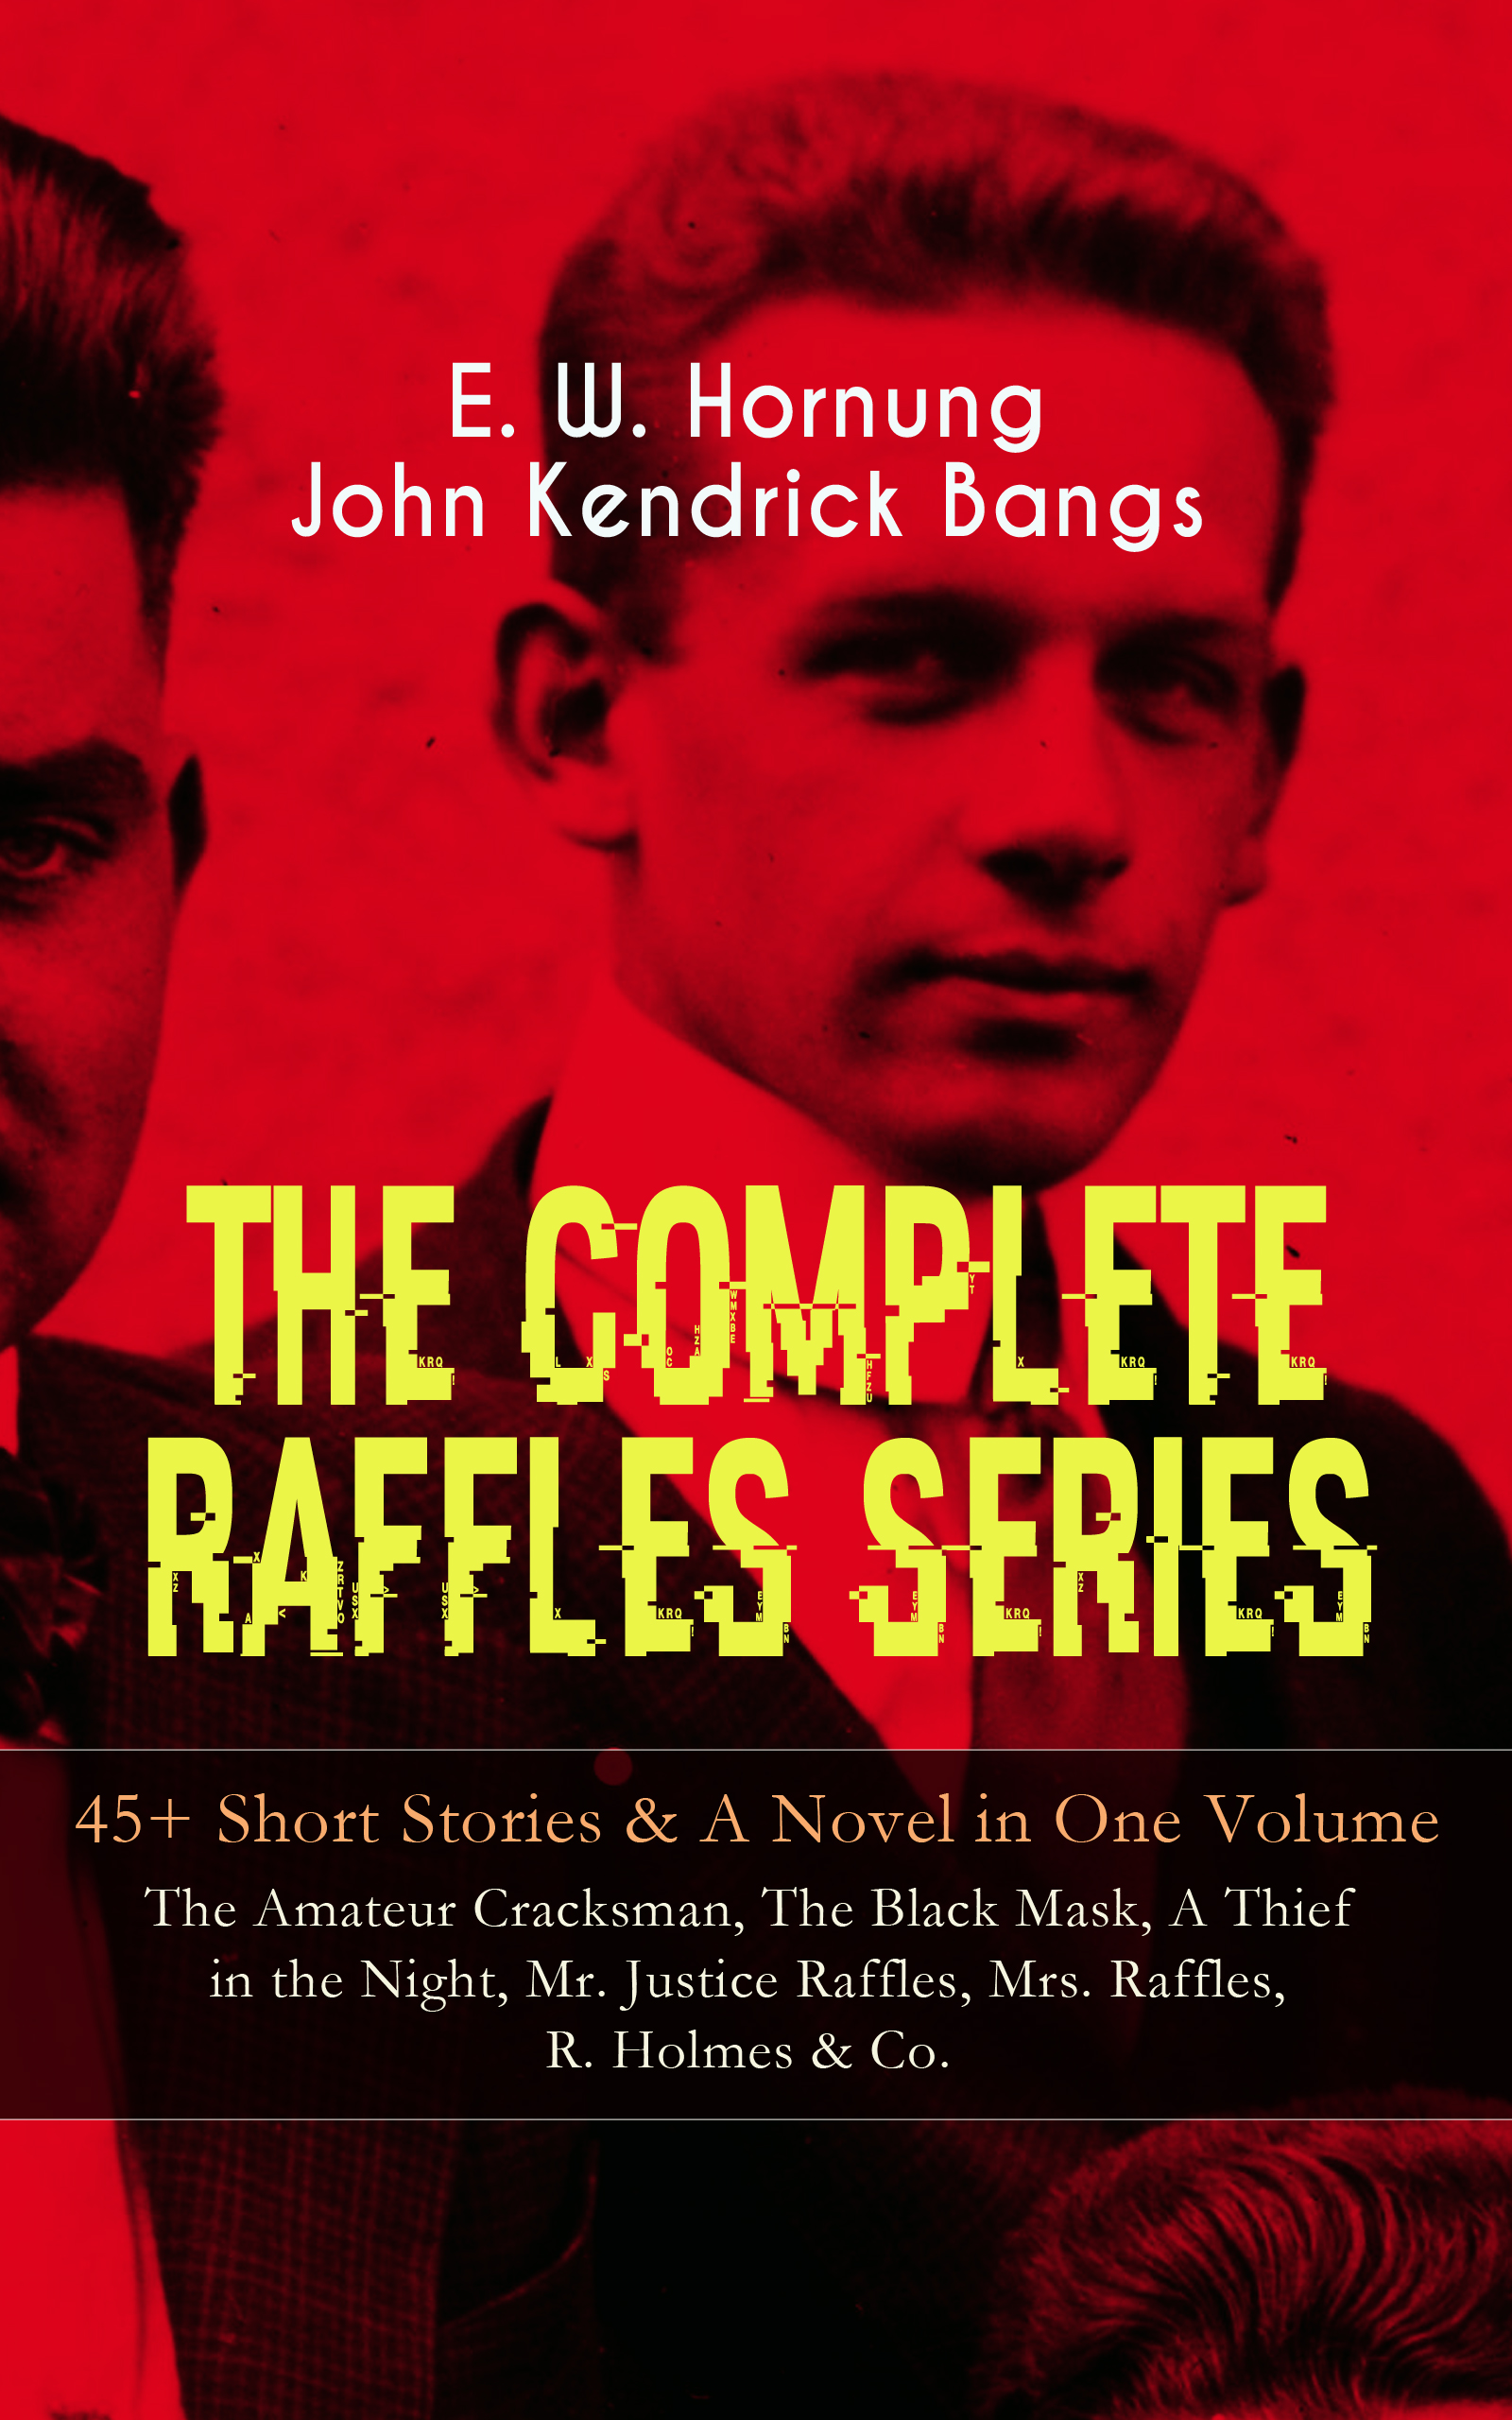 E. W. Hornung THE COMPLETE RAFFLES SERIES – 45+ Short Stories & A Novel in One Volume: The Amateur Cracksman, The Black Mask, A Thief in the Night, Mr. Justice Raffles, Mrs. Raffles, R. Holmes & Co. w o johnson the rescue a duke winslow novel